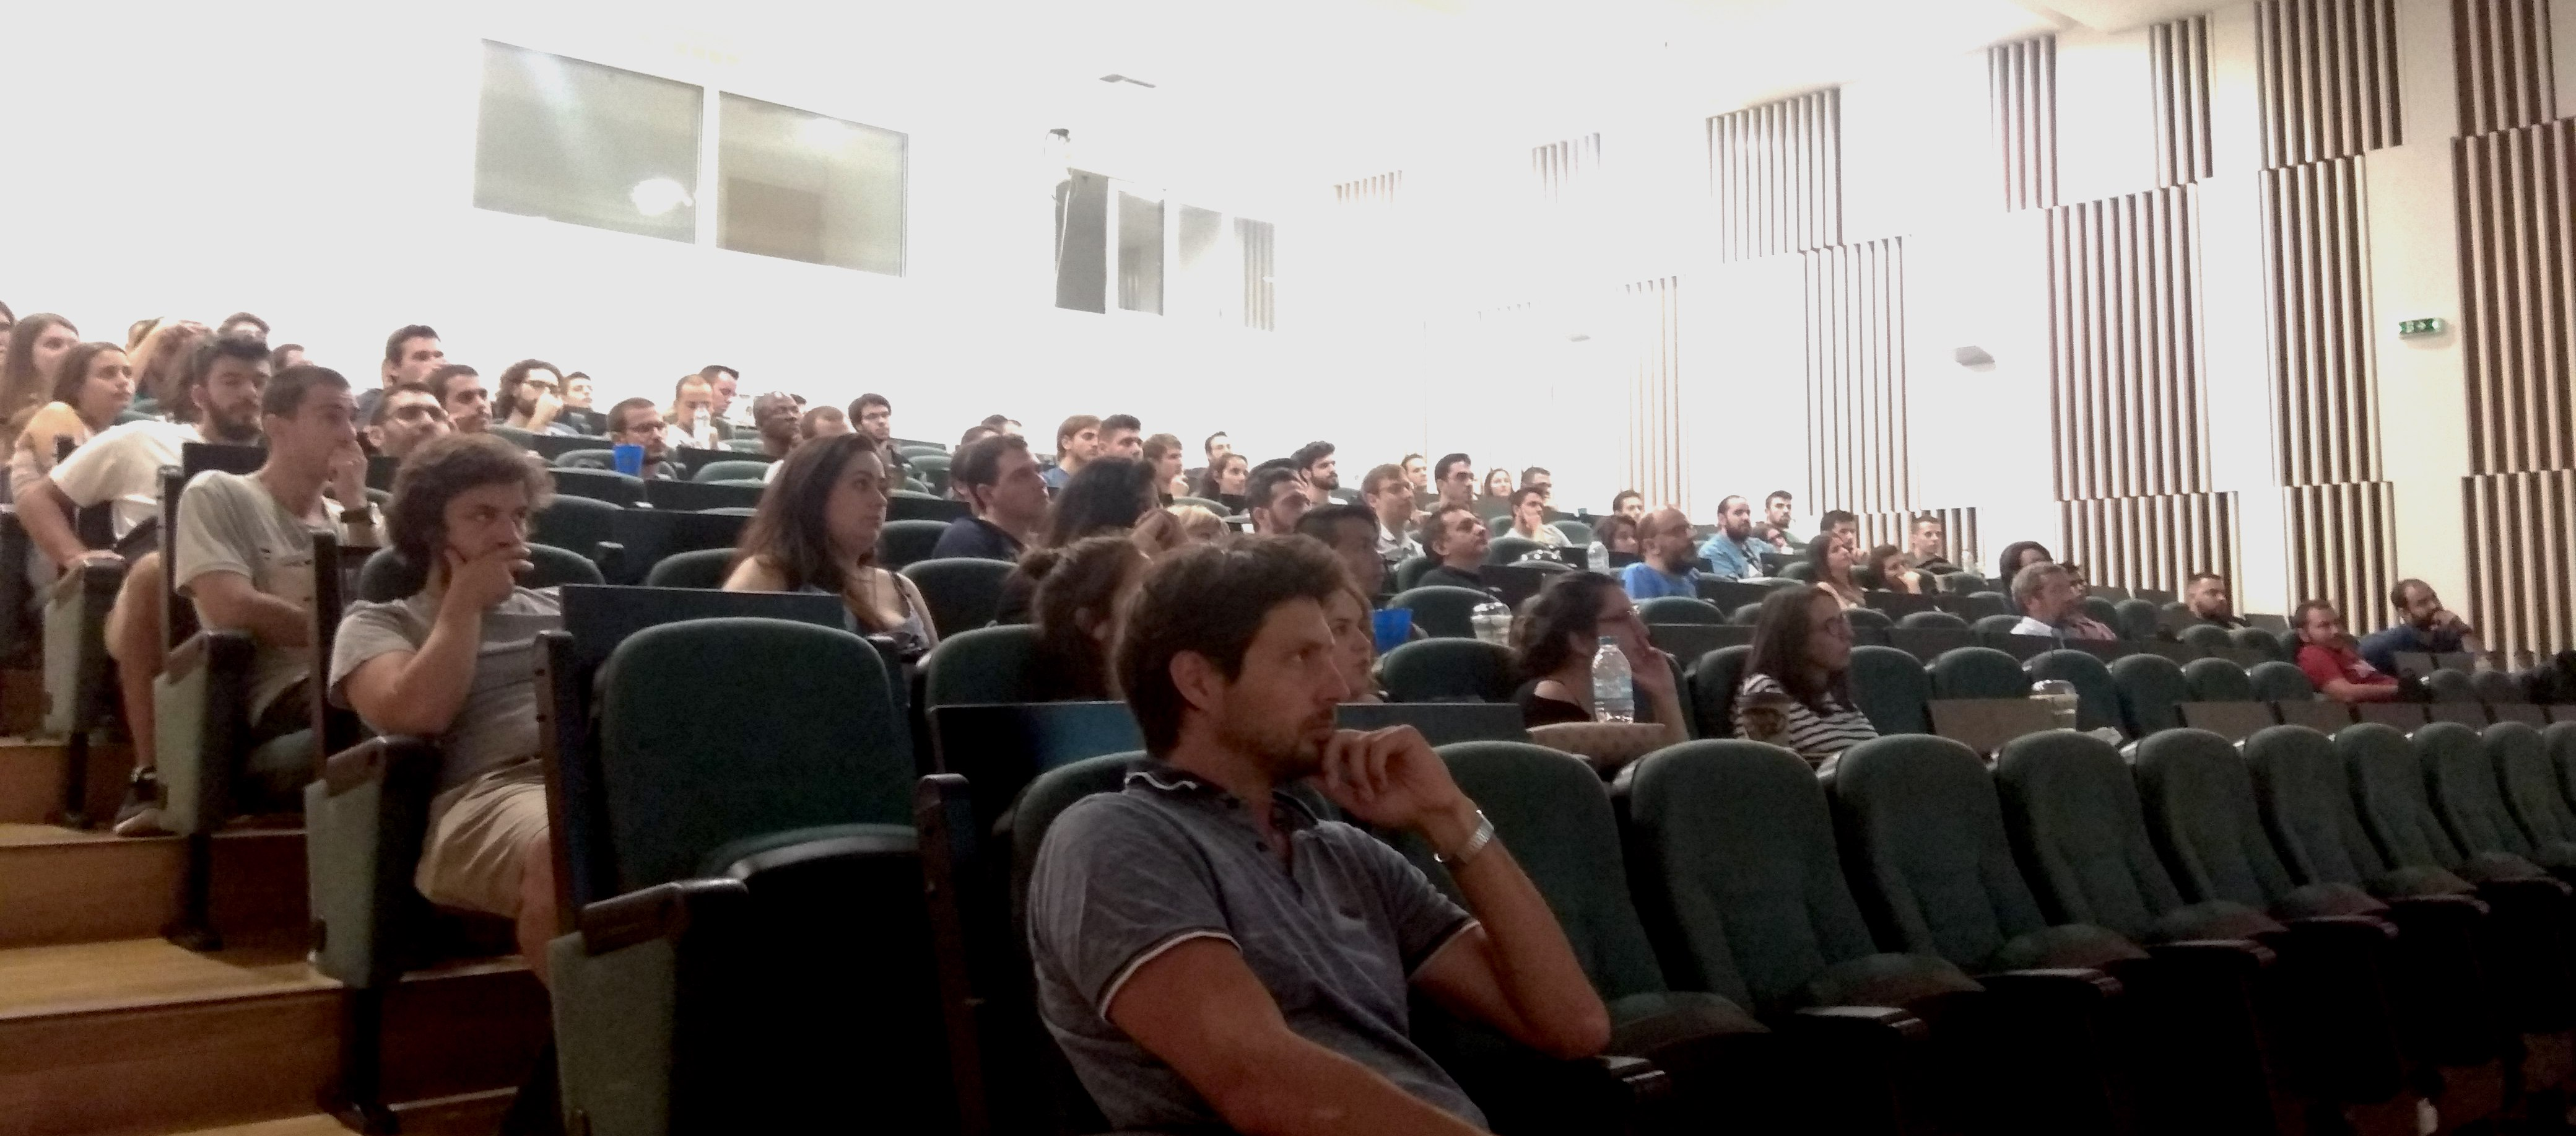 Impressions from the lectures during the summer school